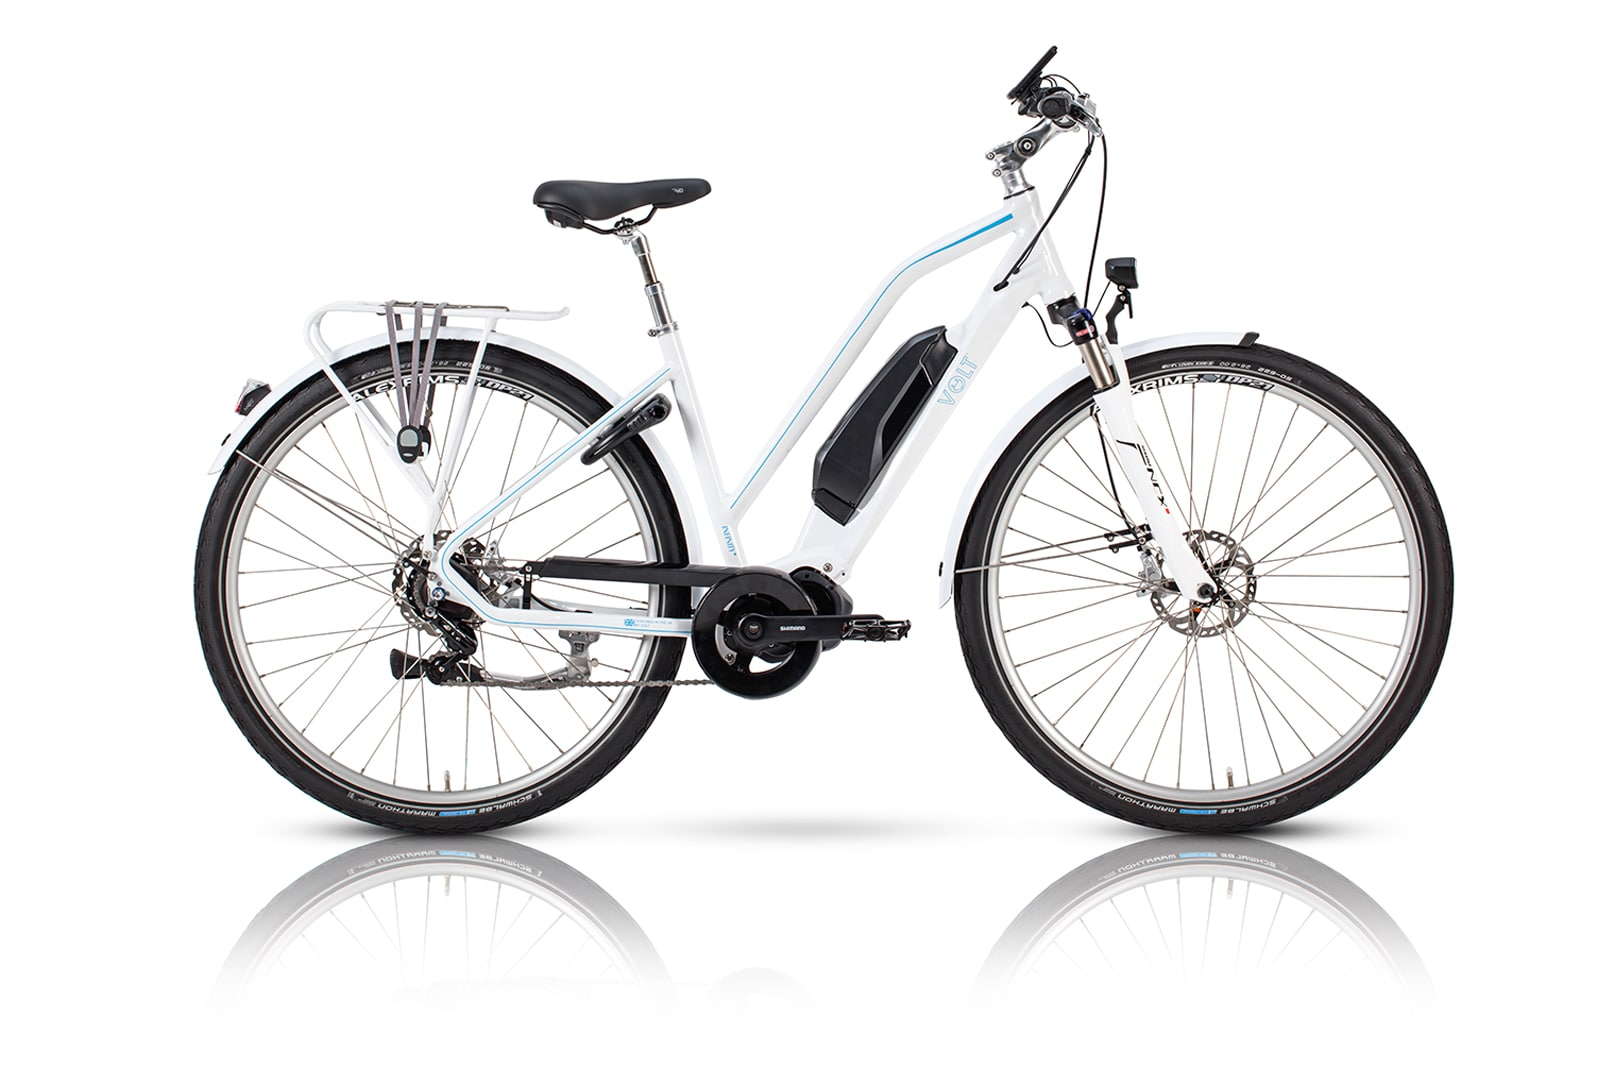 Infinity LS Shimano STEPS e-bike from Volt